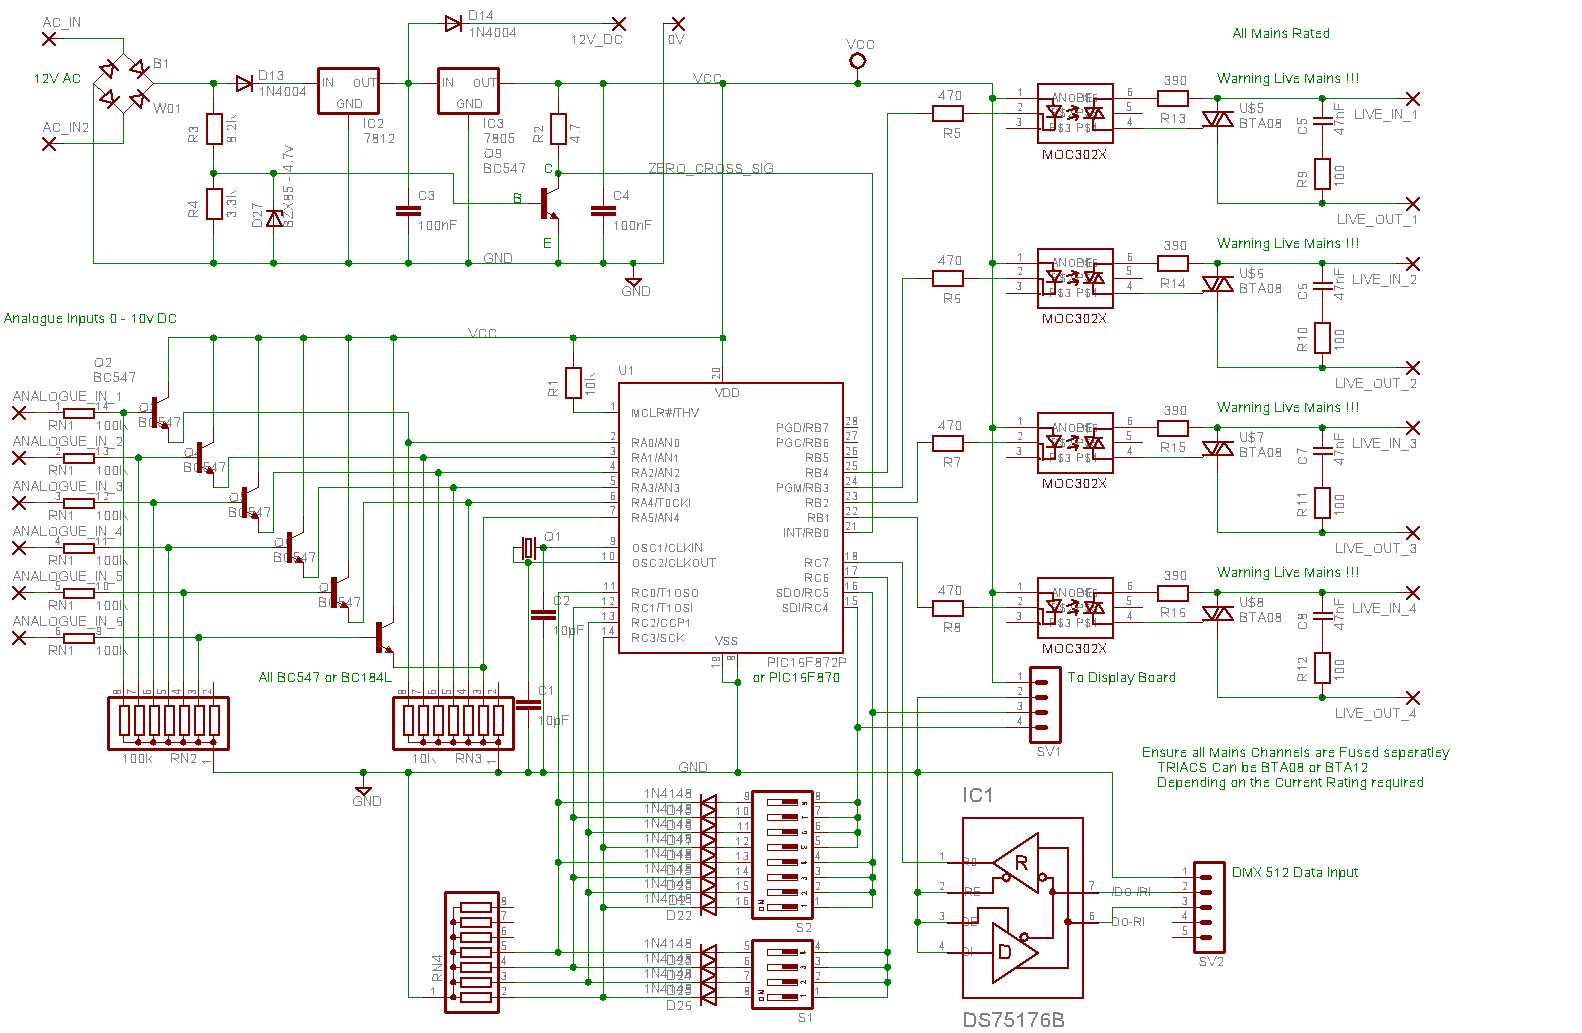 Epiphone Wiring Diagram Of 300 S Dmx 512 Layout Diagrams E Panorama Digi Pack Rh Epanorama Net Control 3 Pin